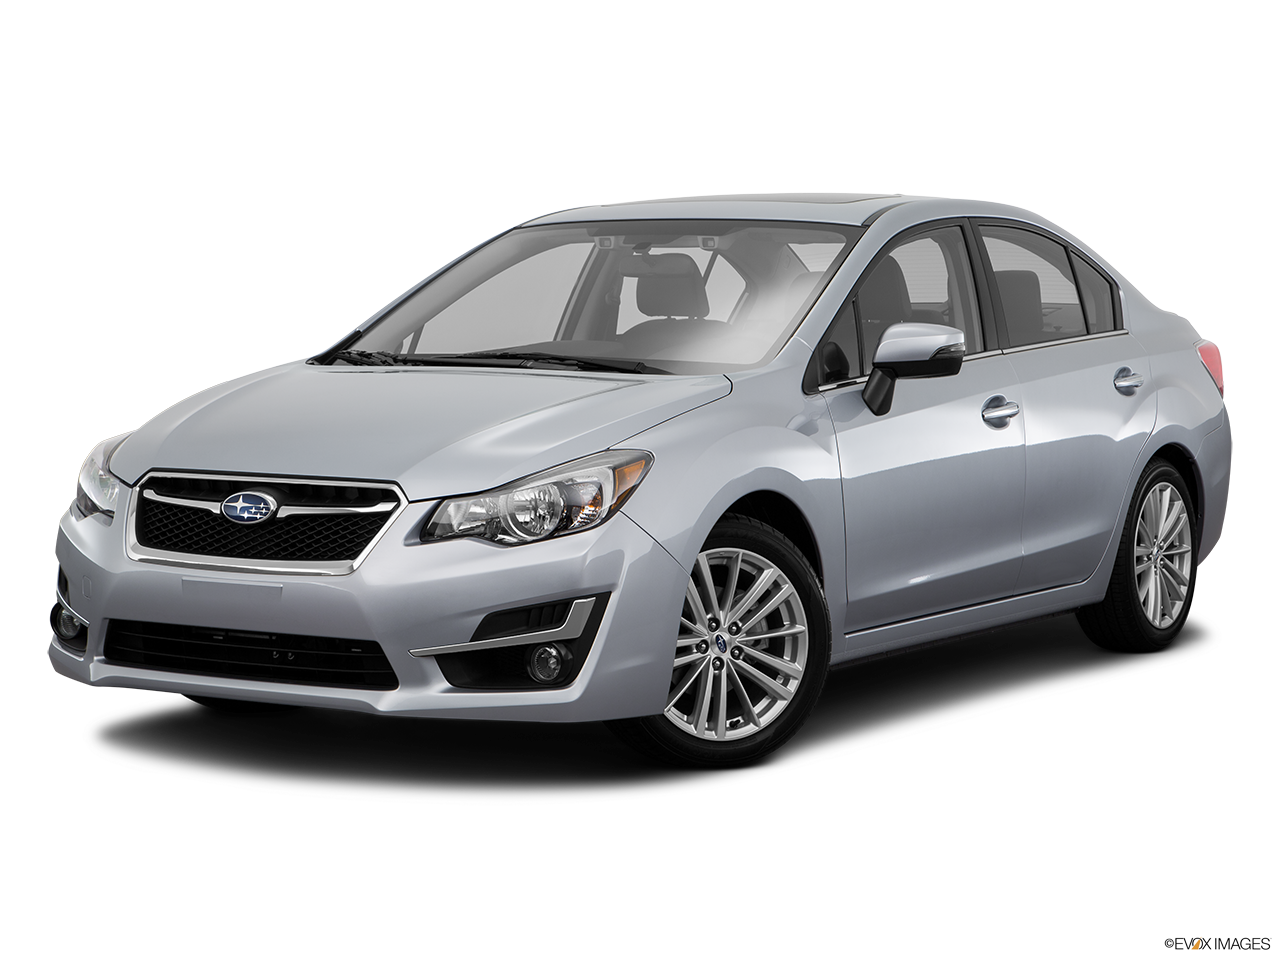 2016 subaru impreza dealer in syracuse romano subaru. Black Bedroom Furniture Sets. Home Design Ideas